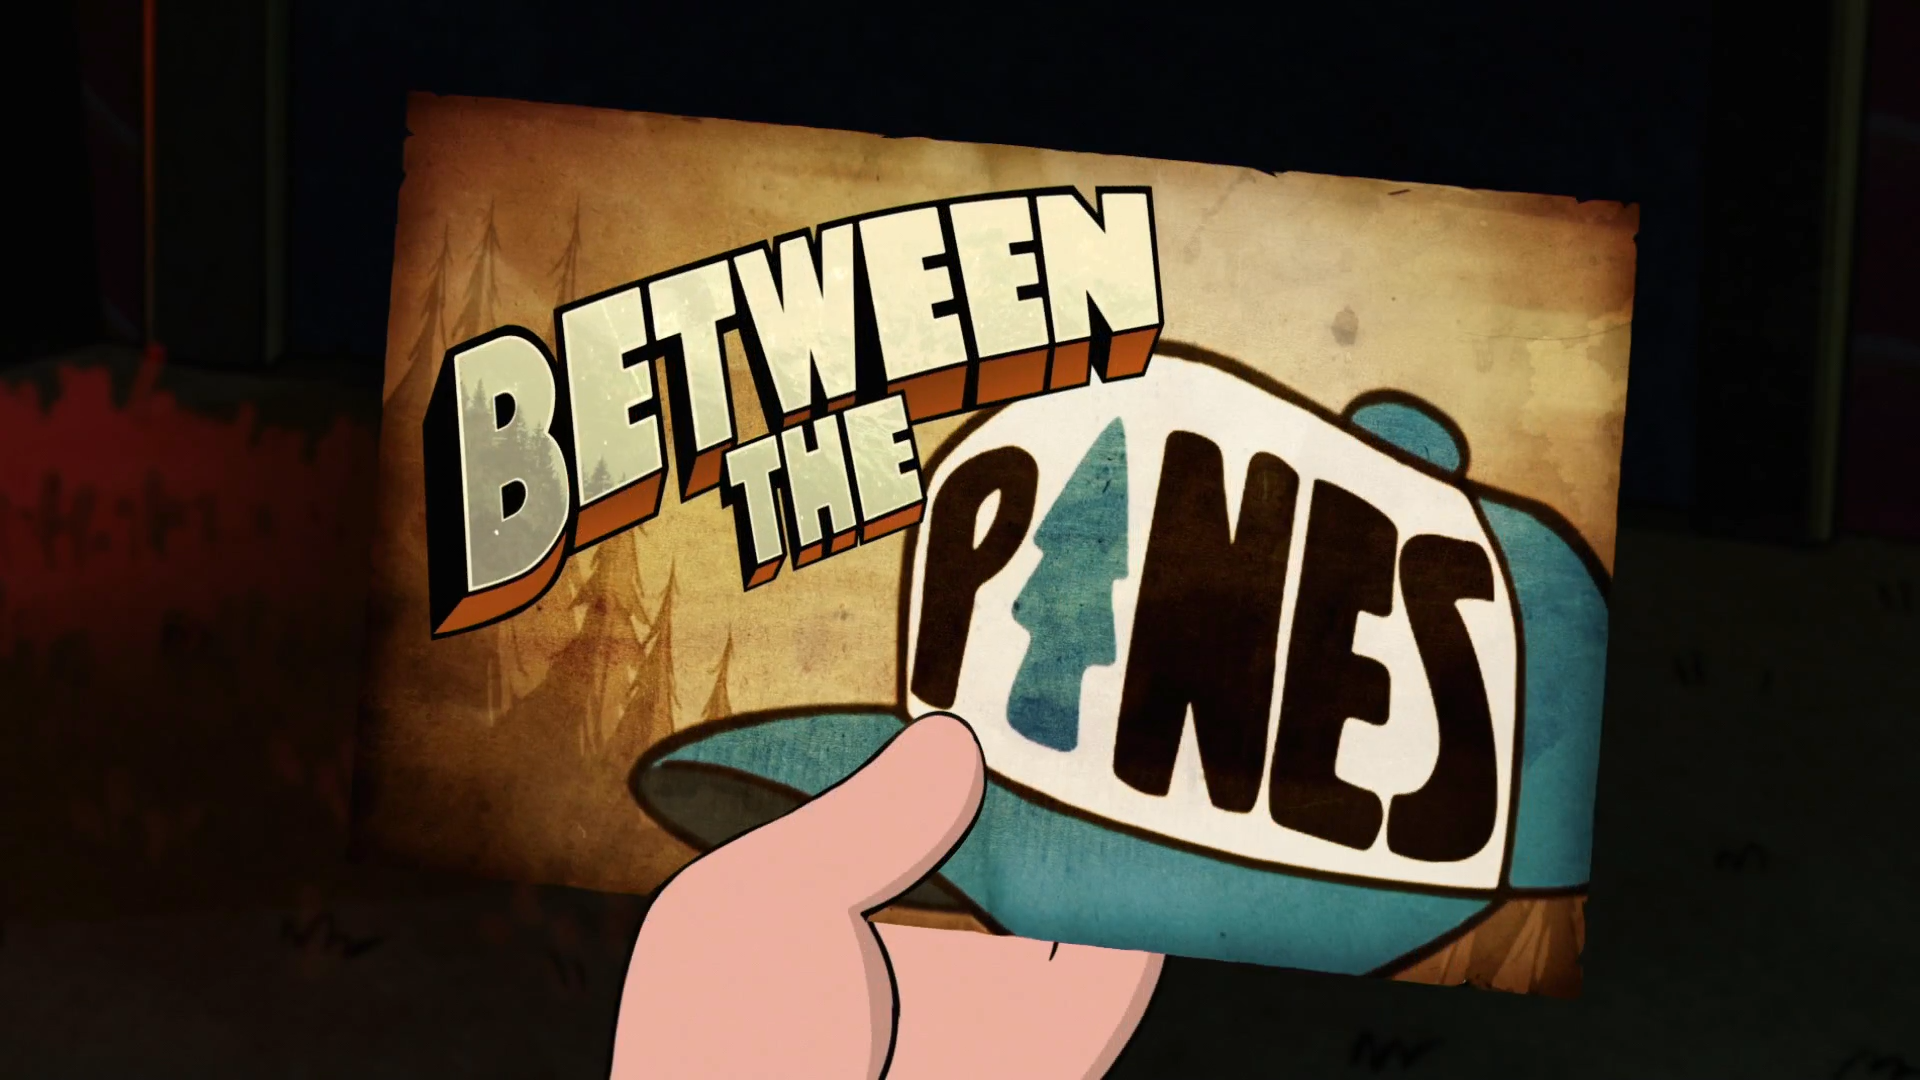 Between the Pines